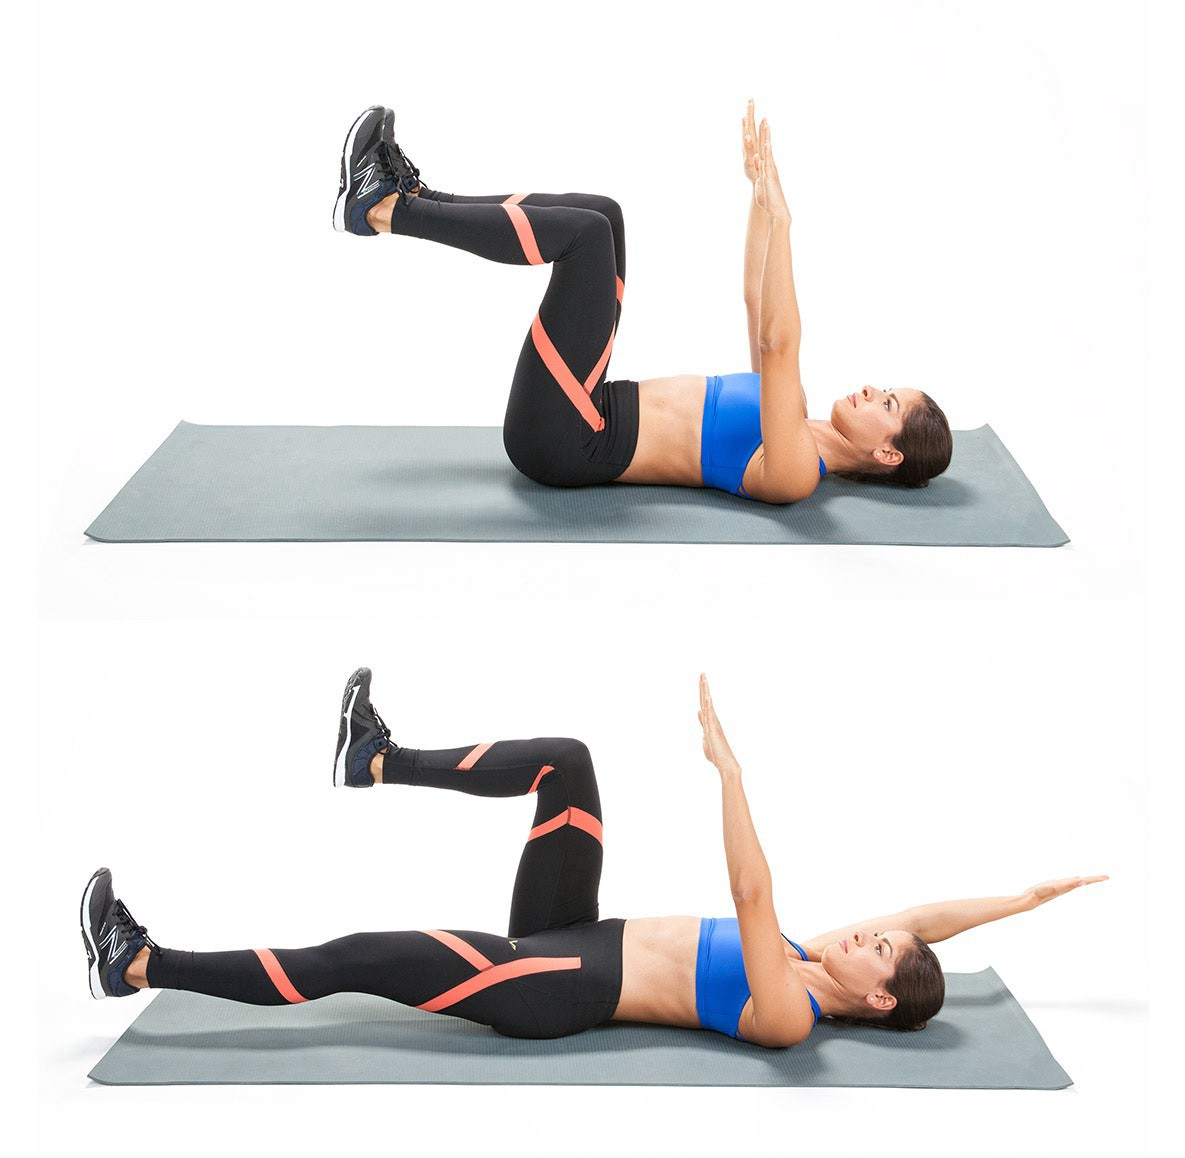 A side view of a woman on her back doing the dead bug exercise with her arms and legs in the air